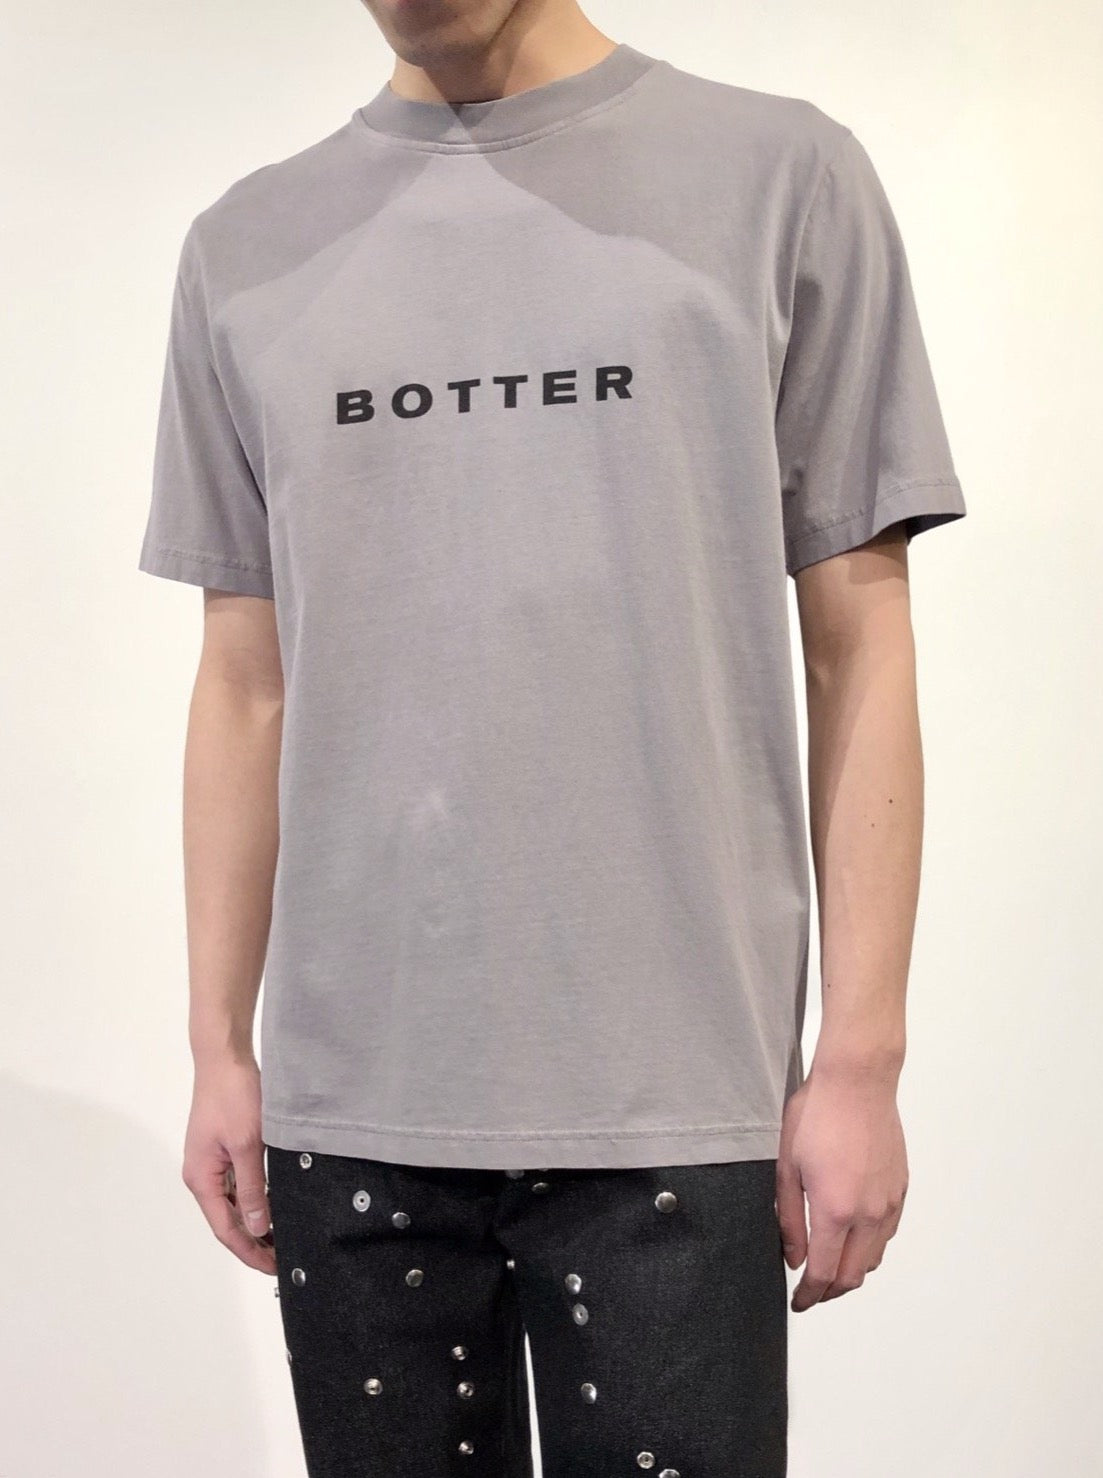 SHORT SLEEVE BOTTER T-SHIRT